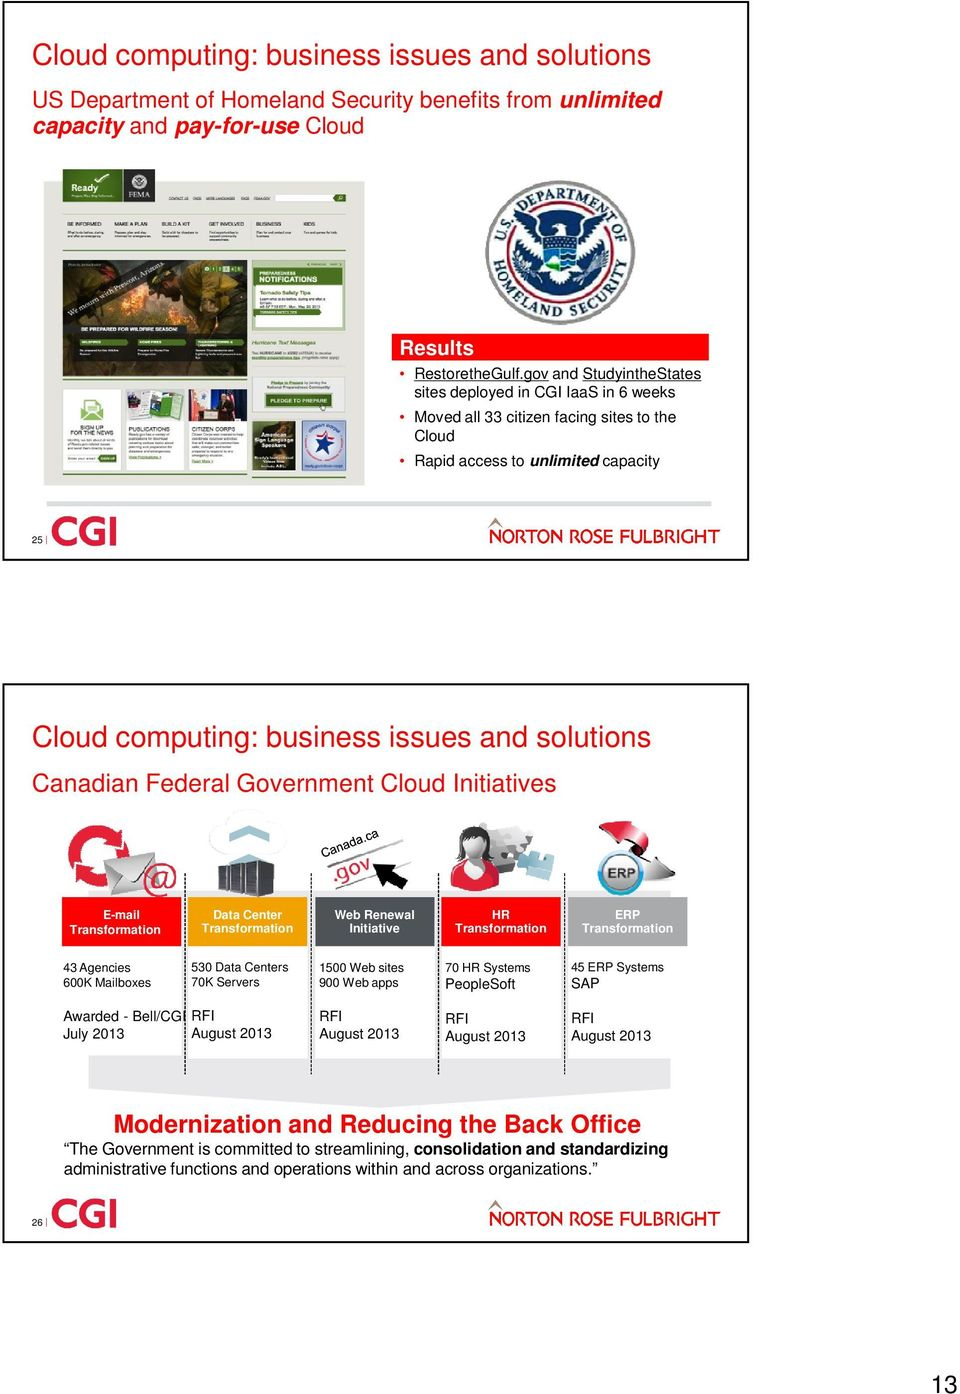 Federal Government Cloud Initiatives E-mail Transformation Data Center Transformation Web Renewal Initiative HR Transformation ERP Transformation 43 Agencies 600K Mailboxes 530 Data Centers 70K